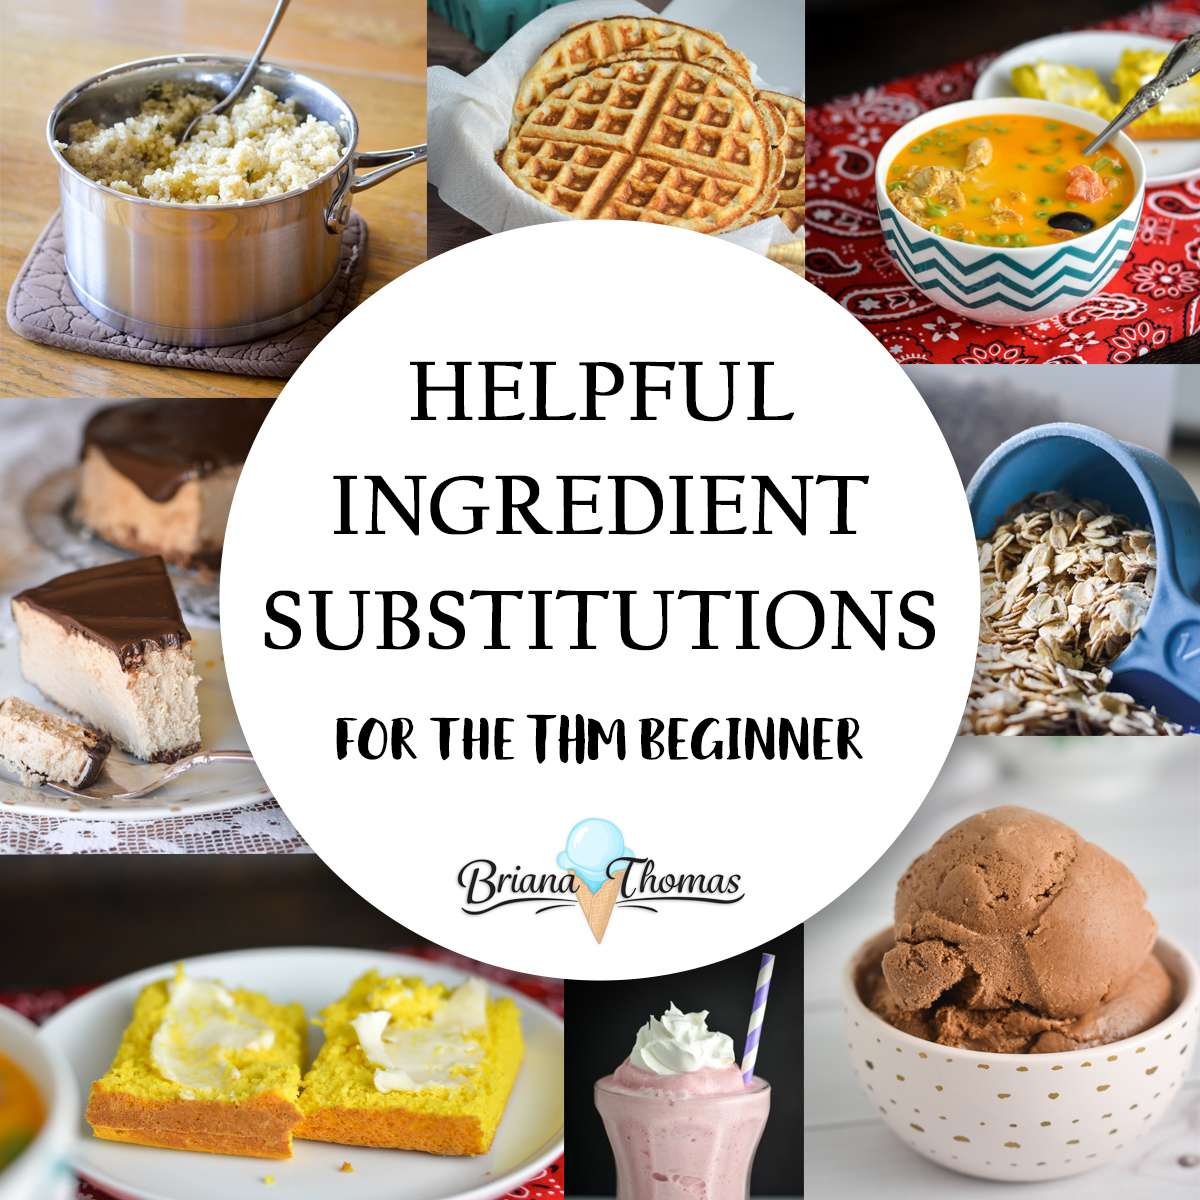 Helpful Ingredient Substitutions for the THM Beginner | Briana Thomas